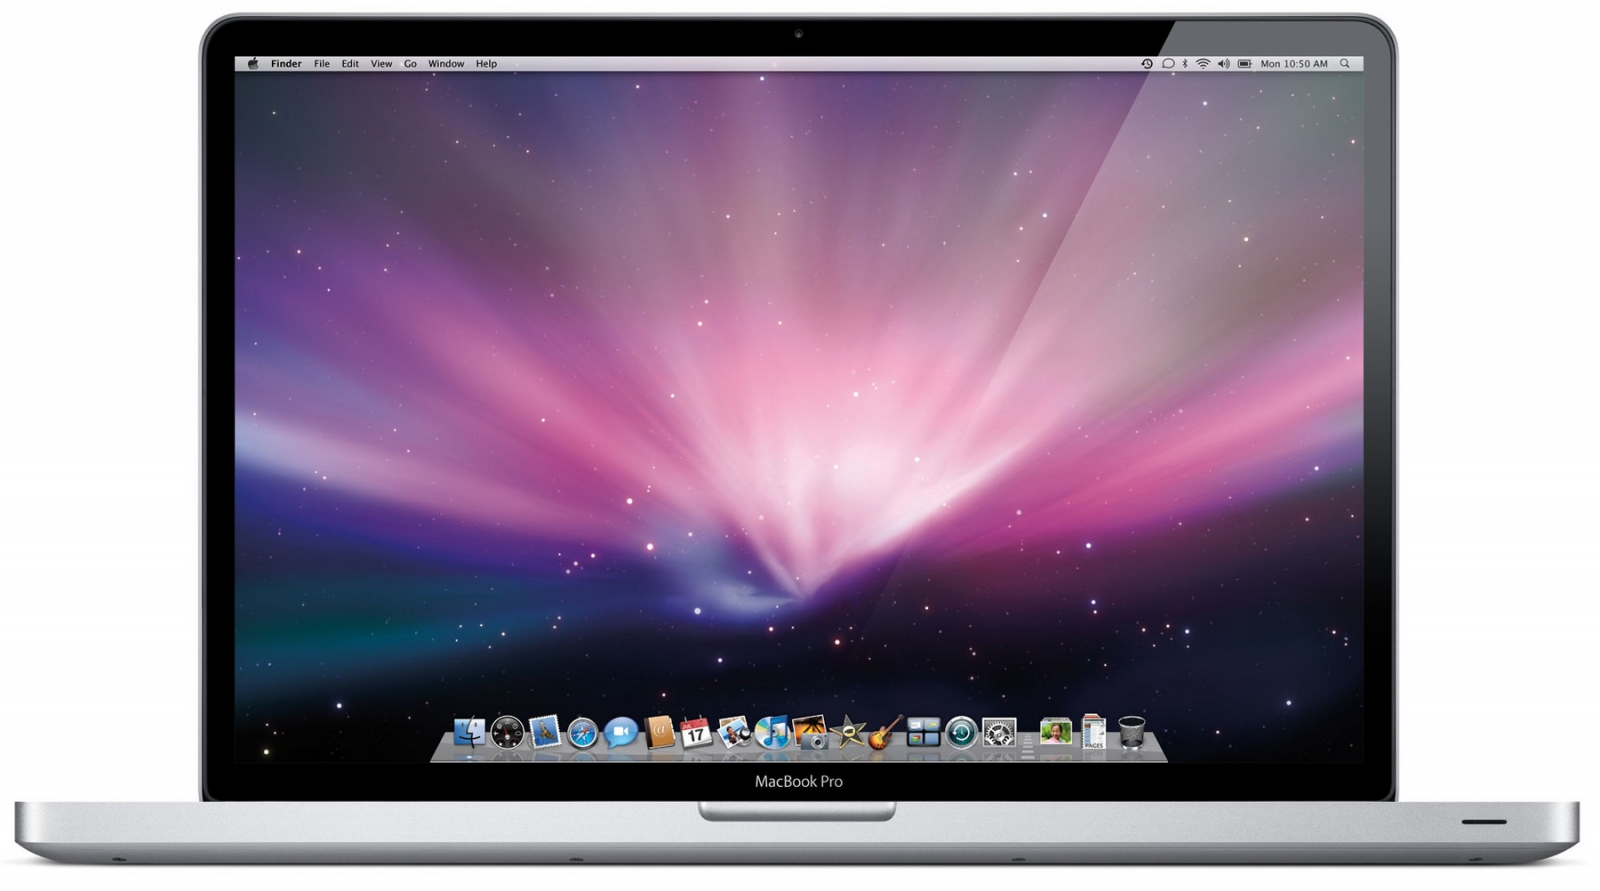 apple macbook pro 15 mid 2009 136aa